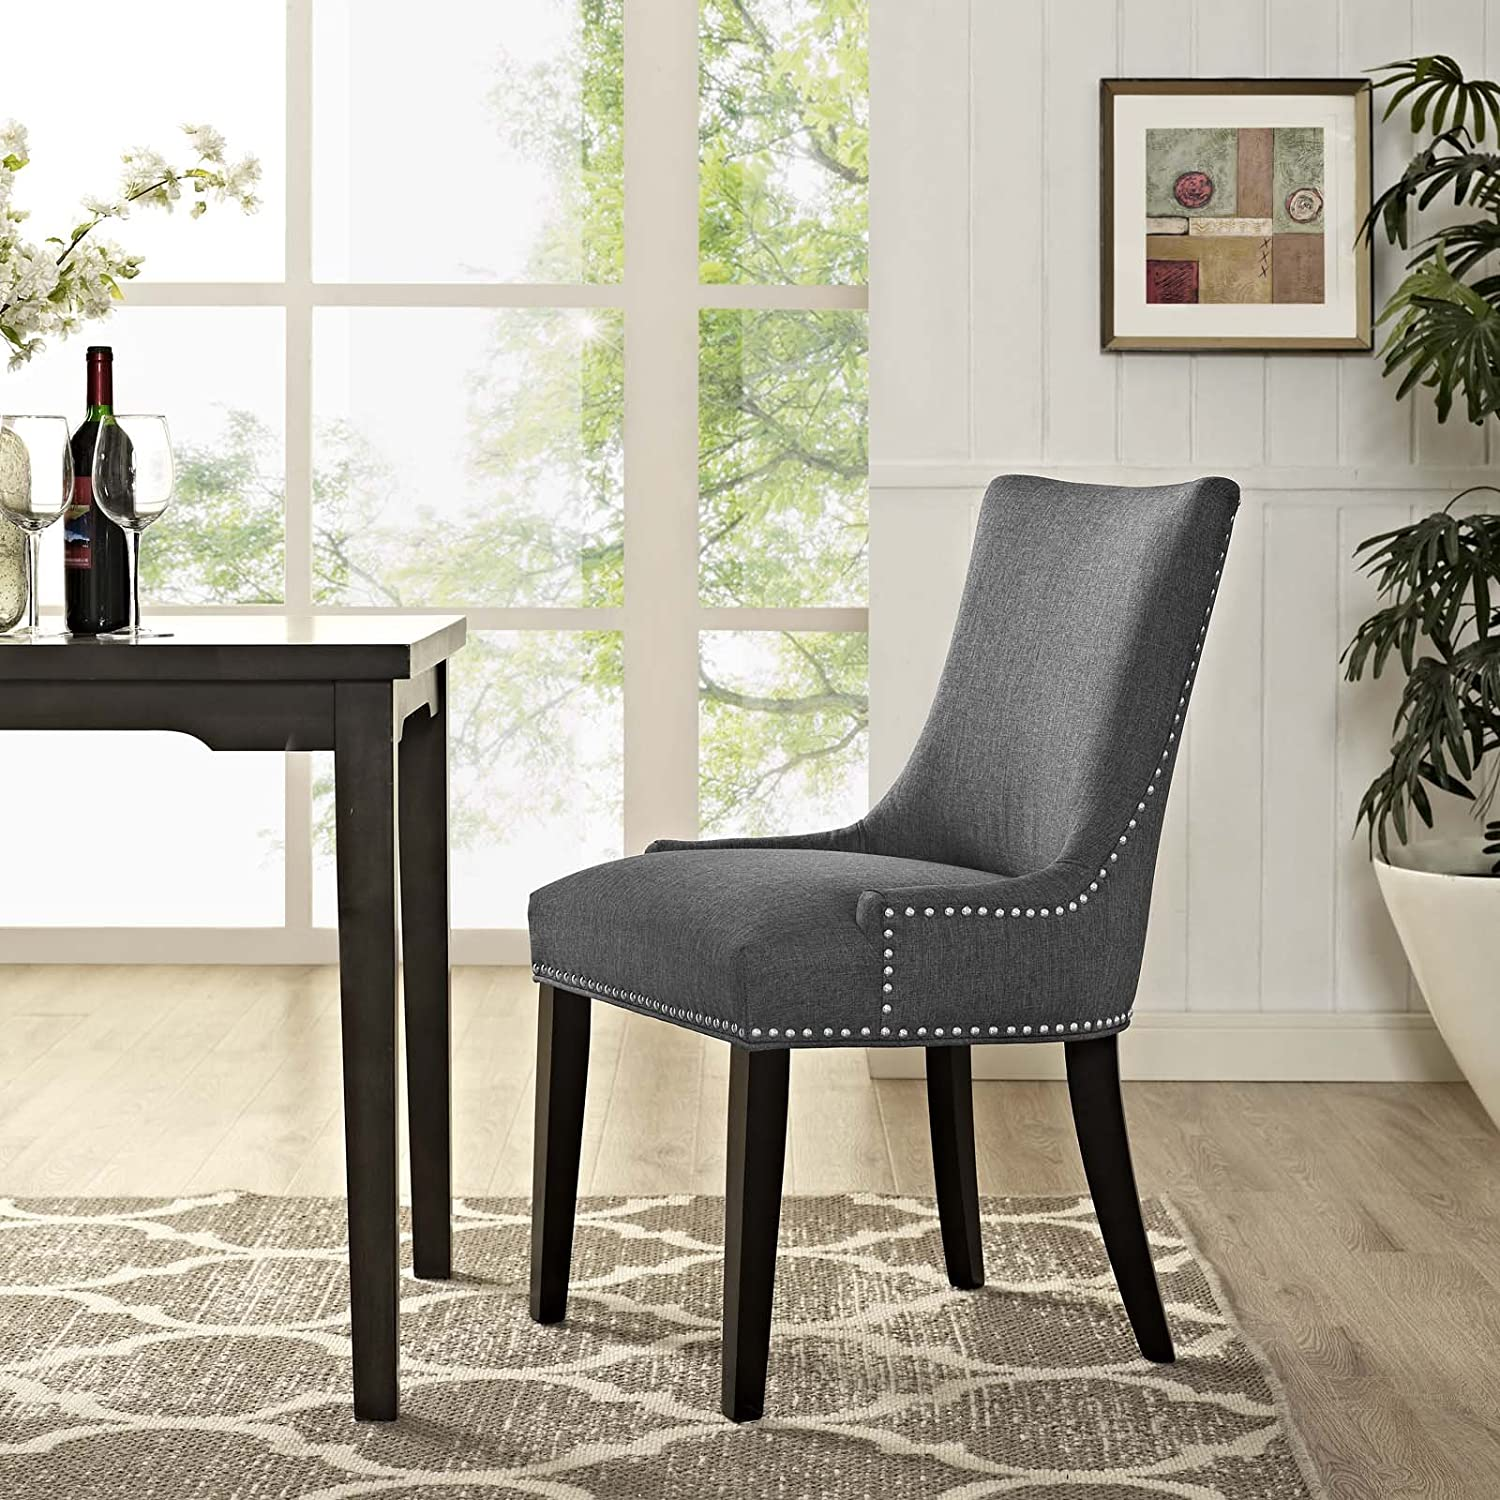 Modway Marquis Modern Upholstered Fabric Parsons Kitchen and Dining Room Chair with Nailhead Trim in Gray